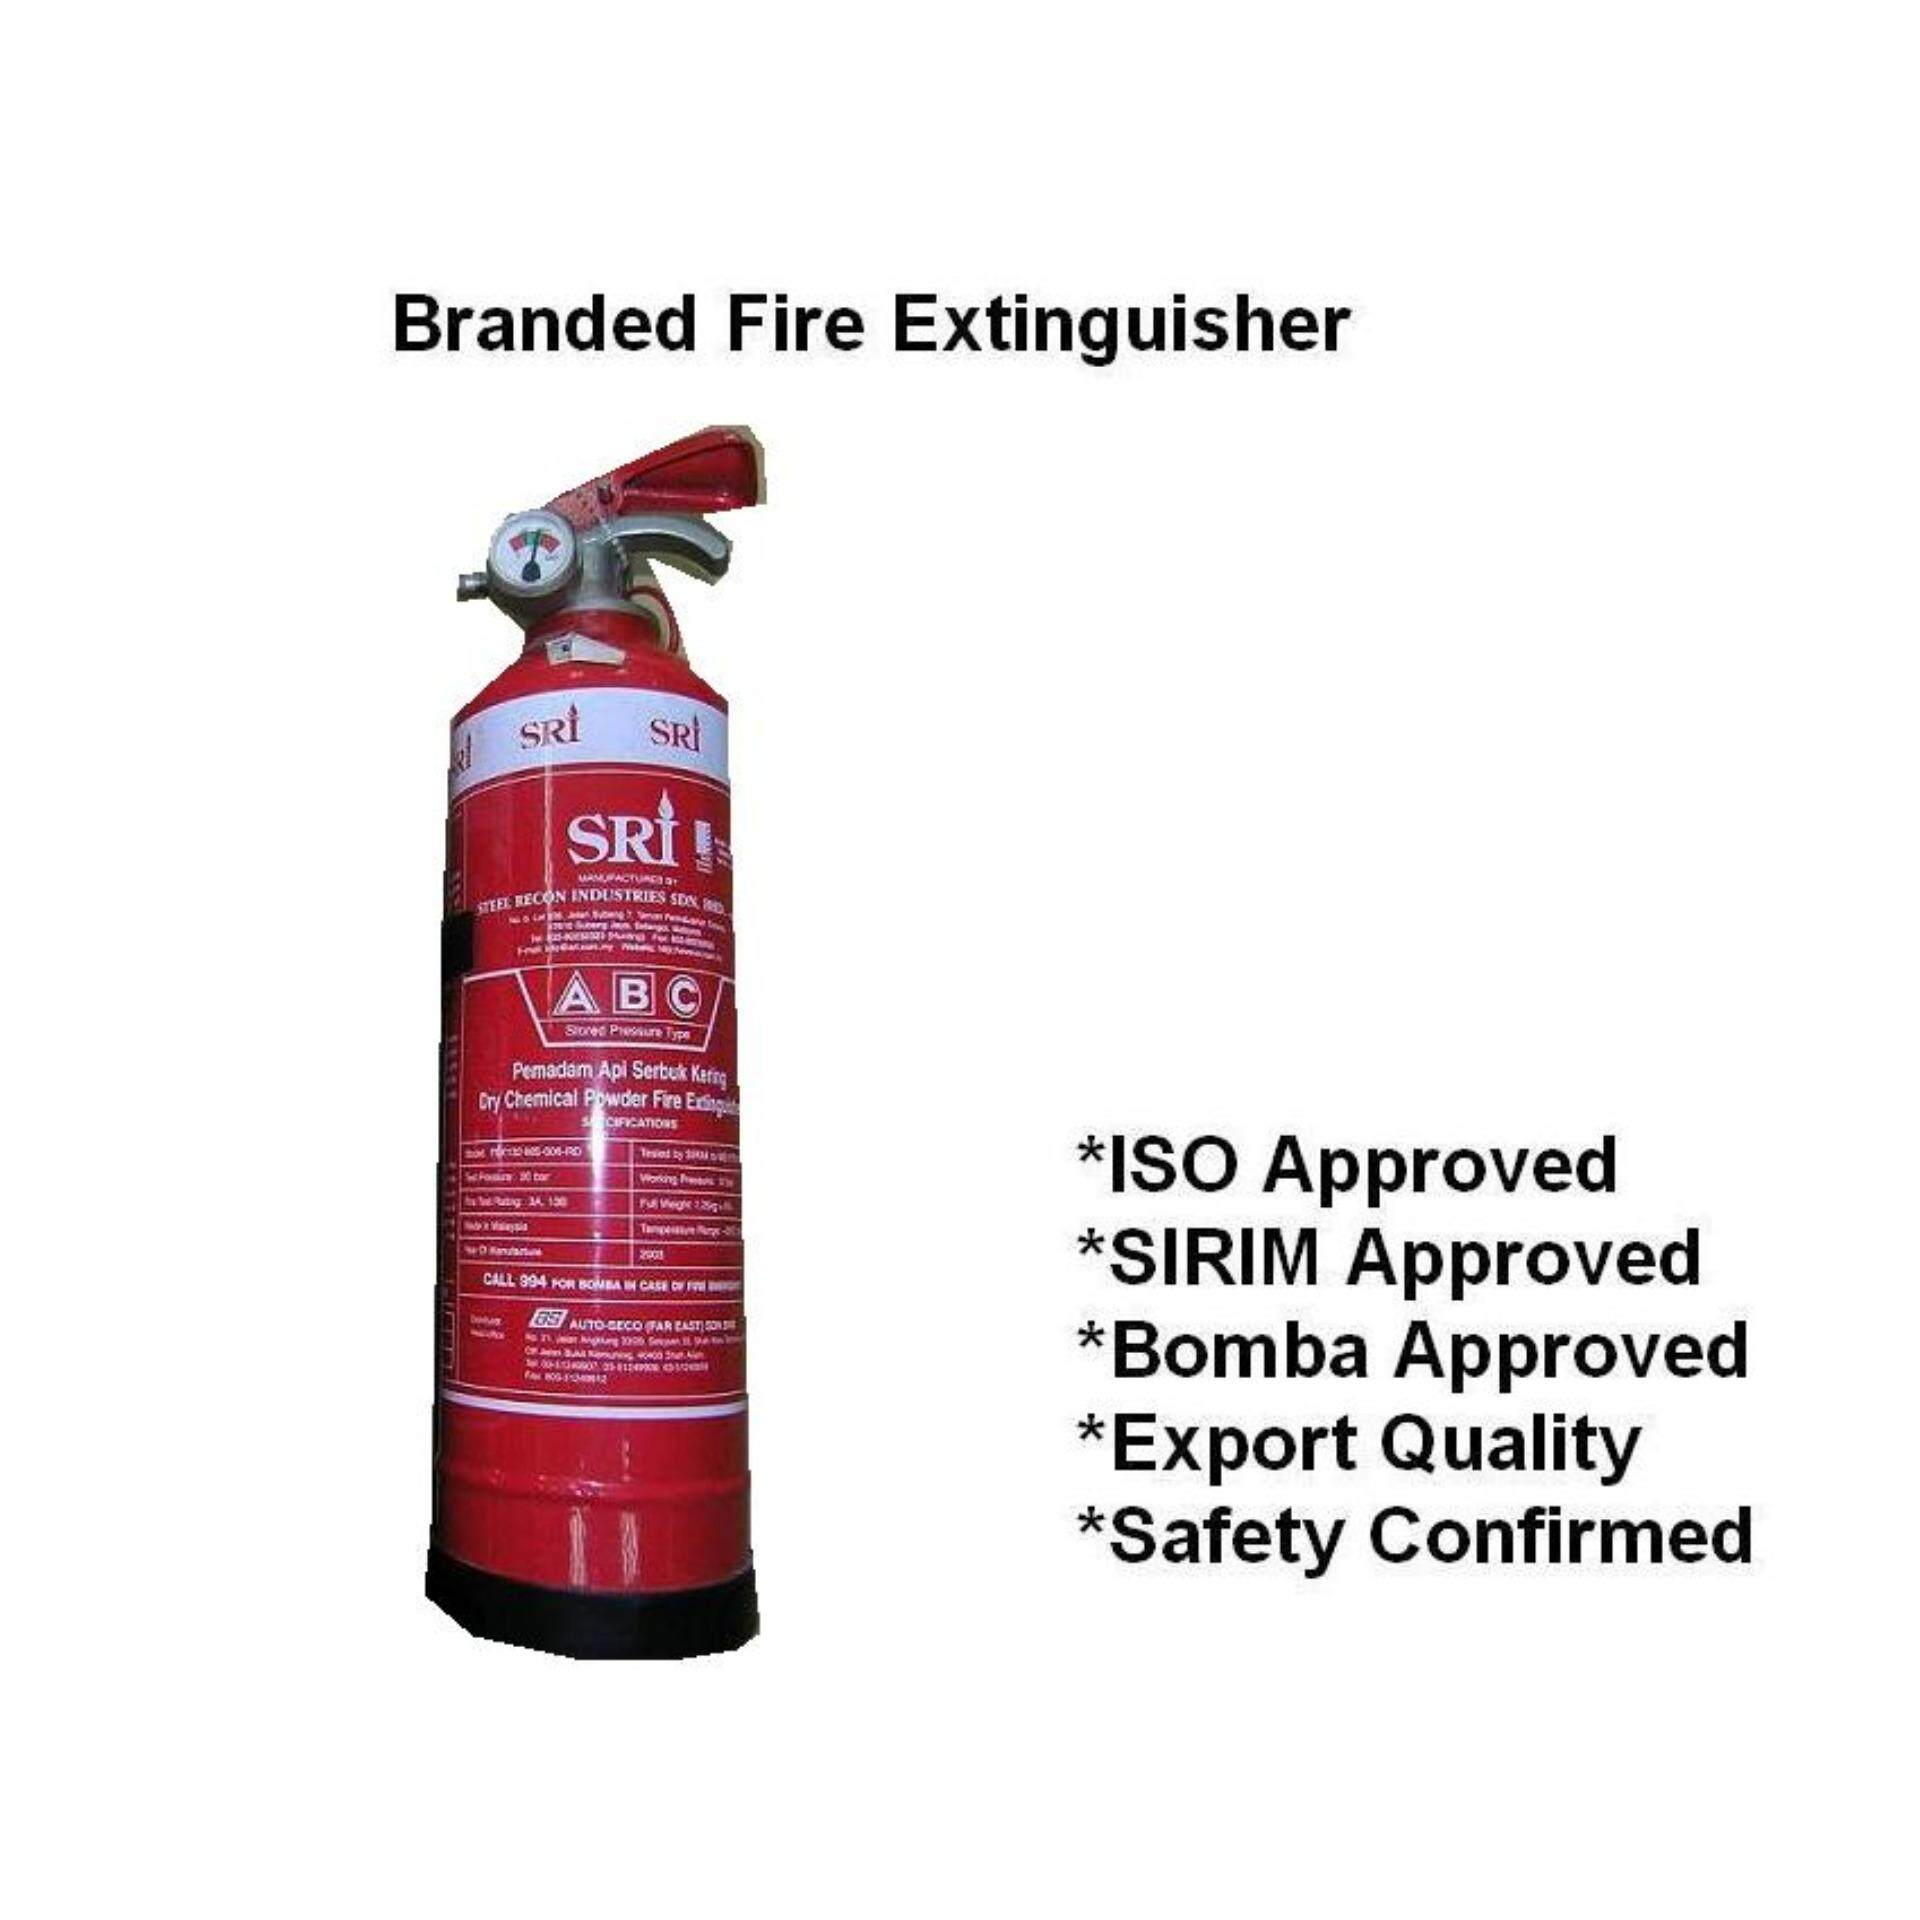 600G ABC powder branded fire extinguisher for house and car(SIRIM and BOMBA Approved)